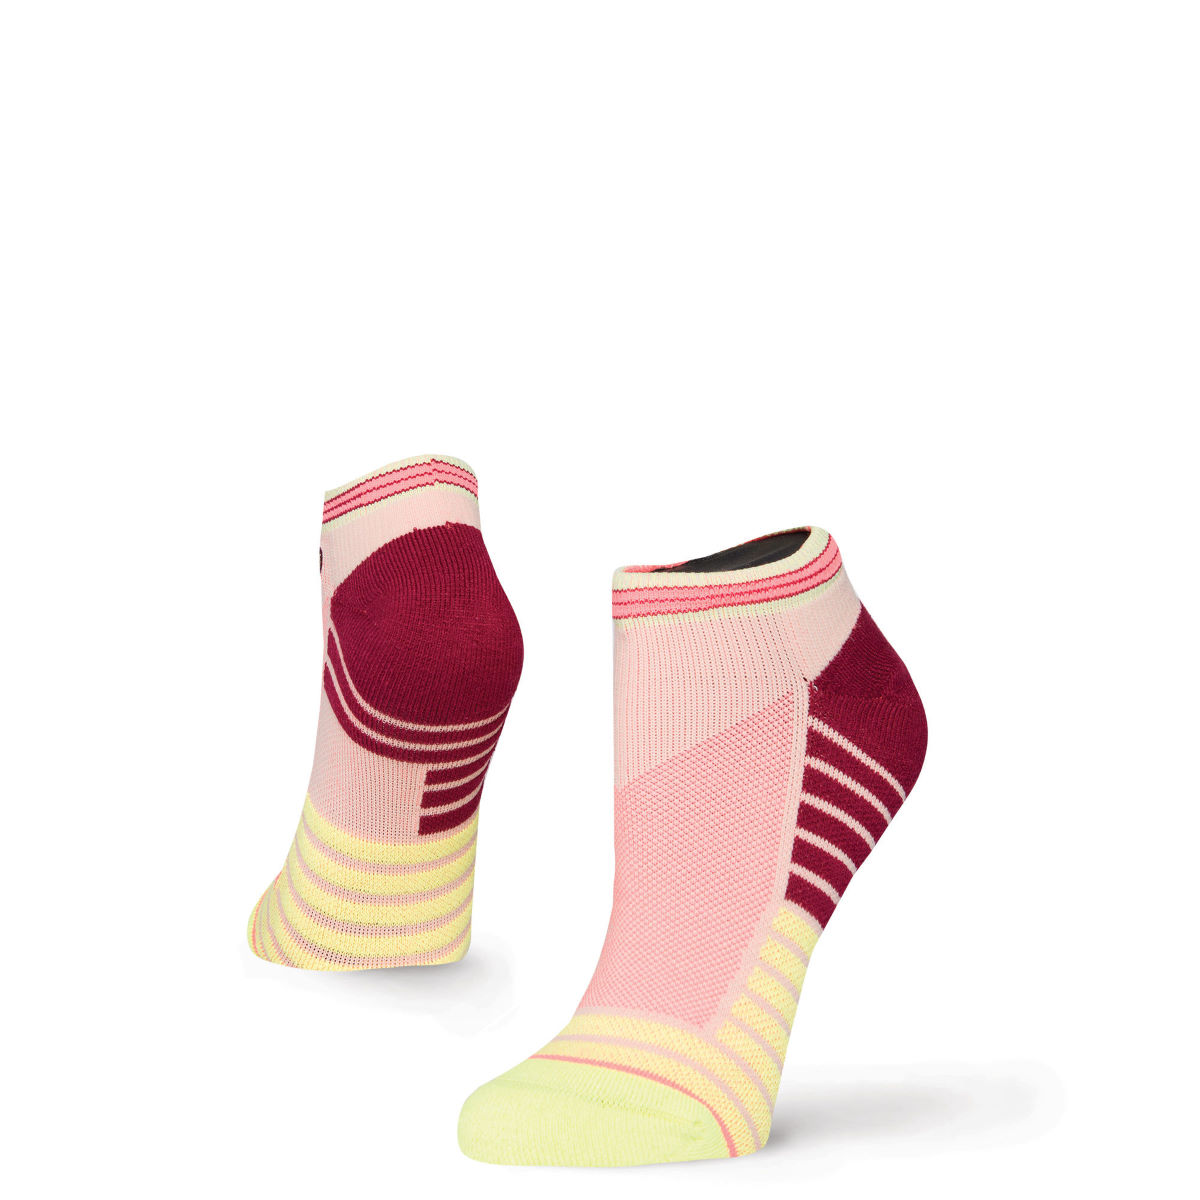 Calcetines de fitness Stance Record Training para mujer (caña baja) - Calcetines